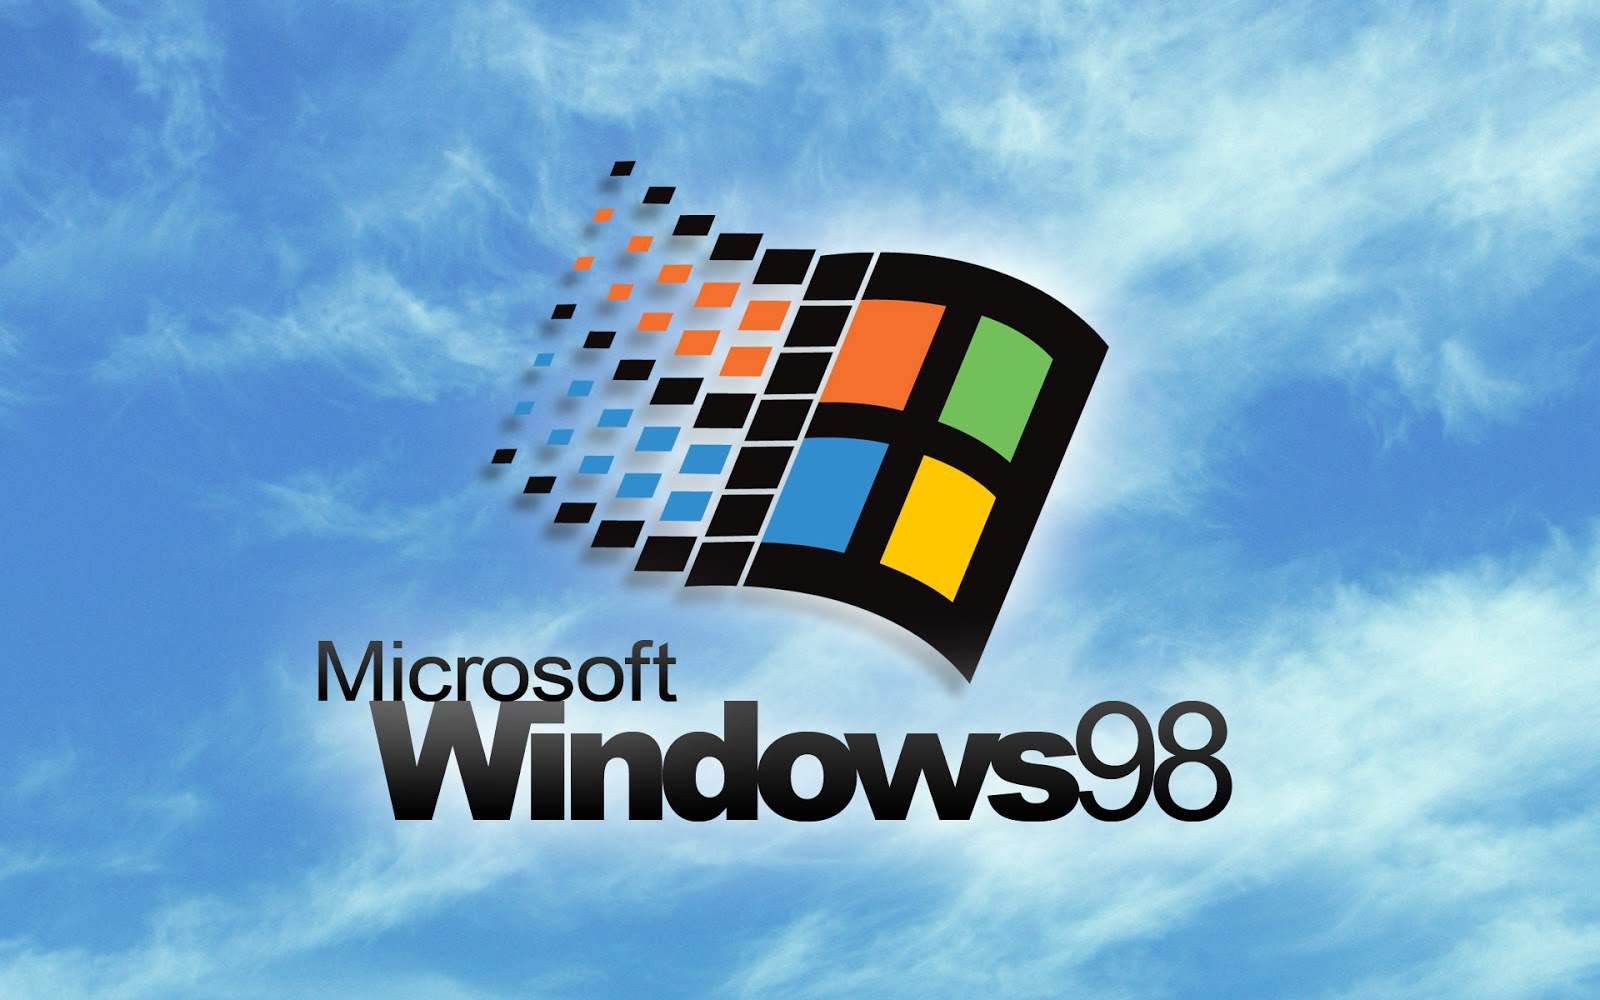 Como usar Windows 98